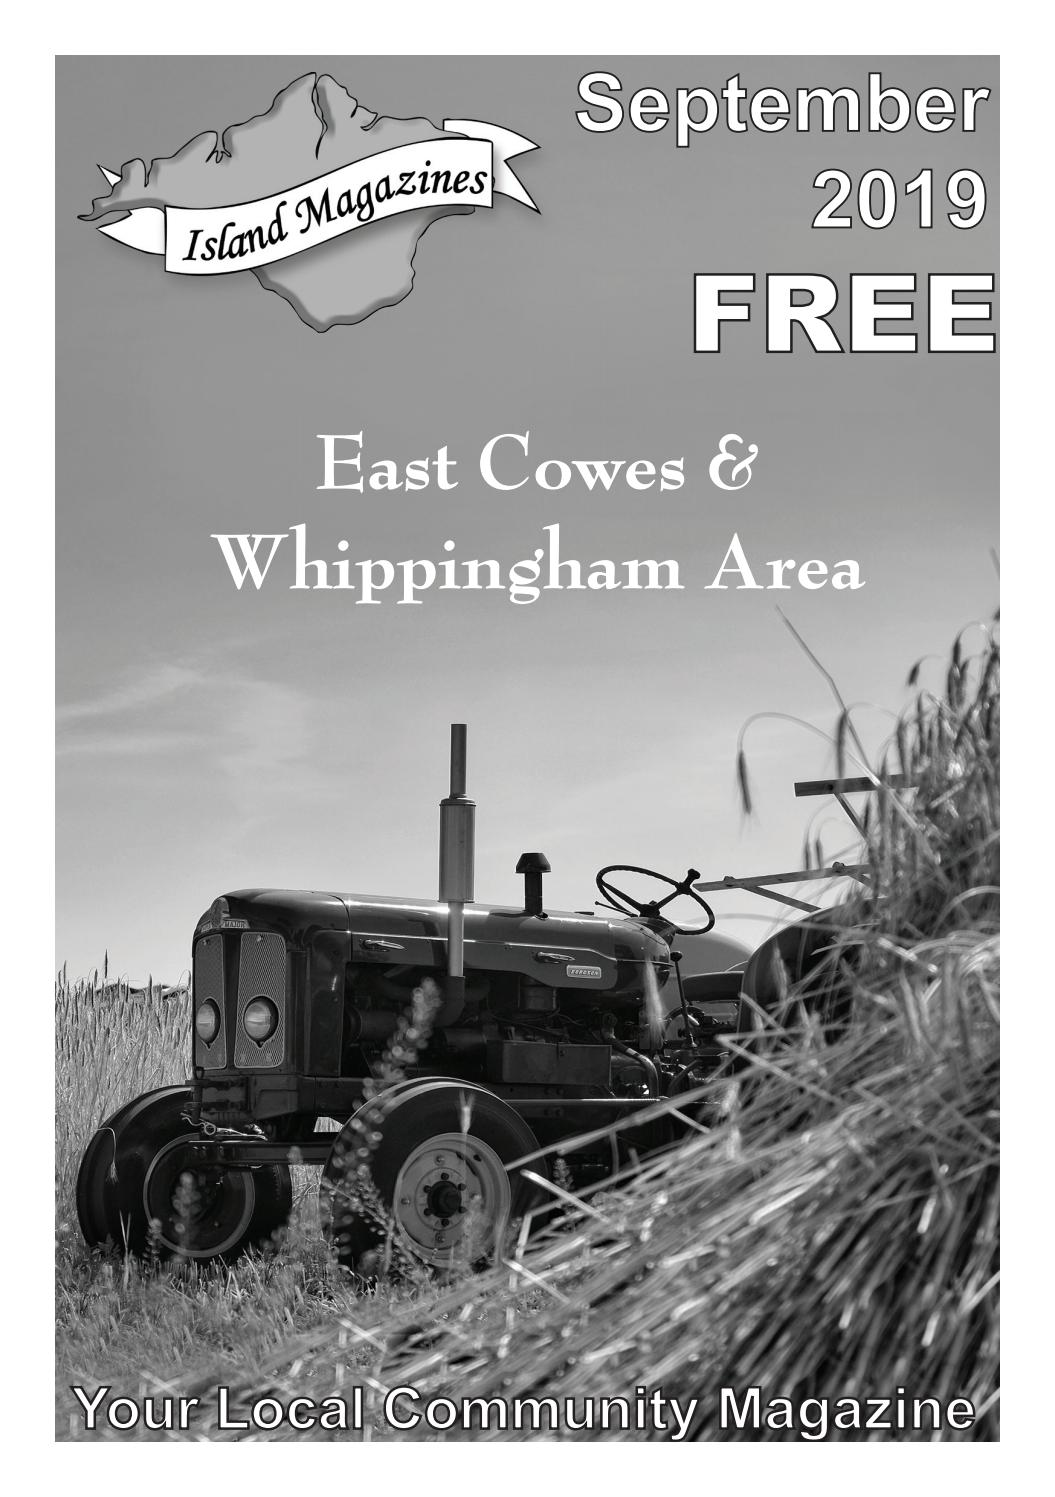 Island Magazines September 2019 Issue For East Cowes Whippingham Area By Island Magazines Issuu